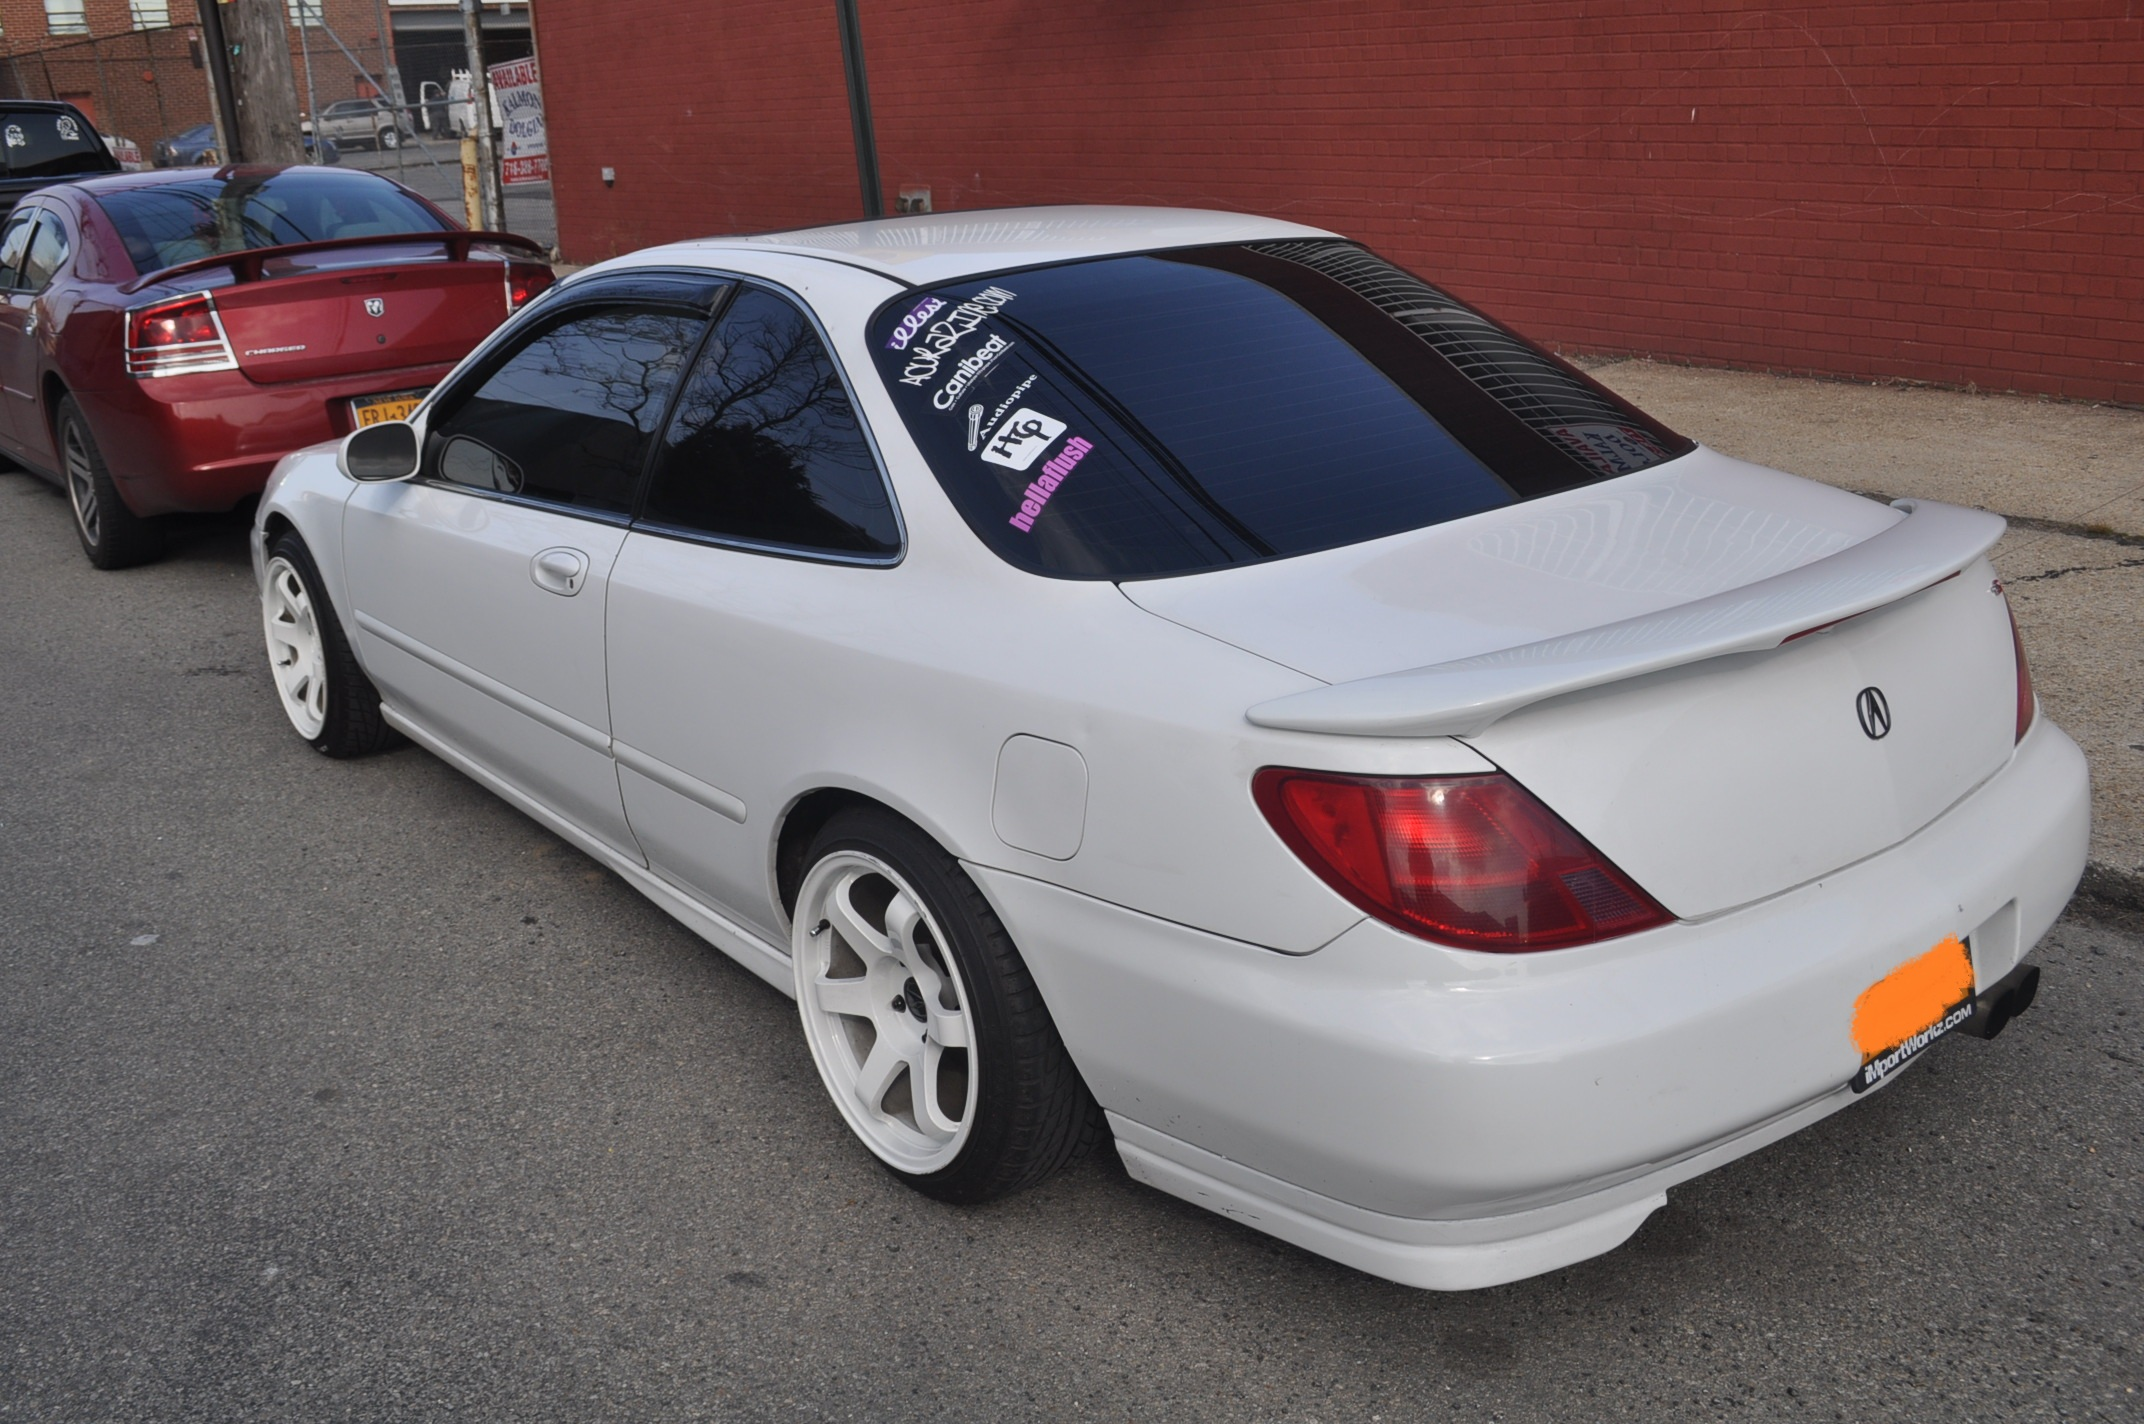 Acura CL Custom Wheels ROTA GRID X ET Tire Size - Acura cl 97